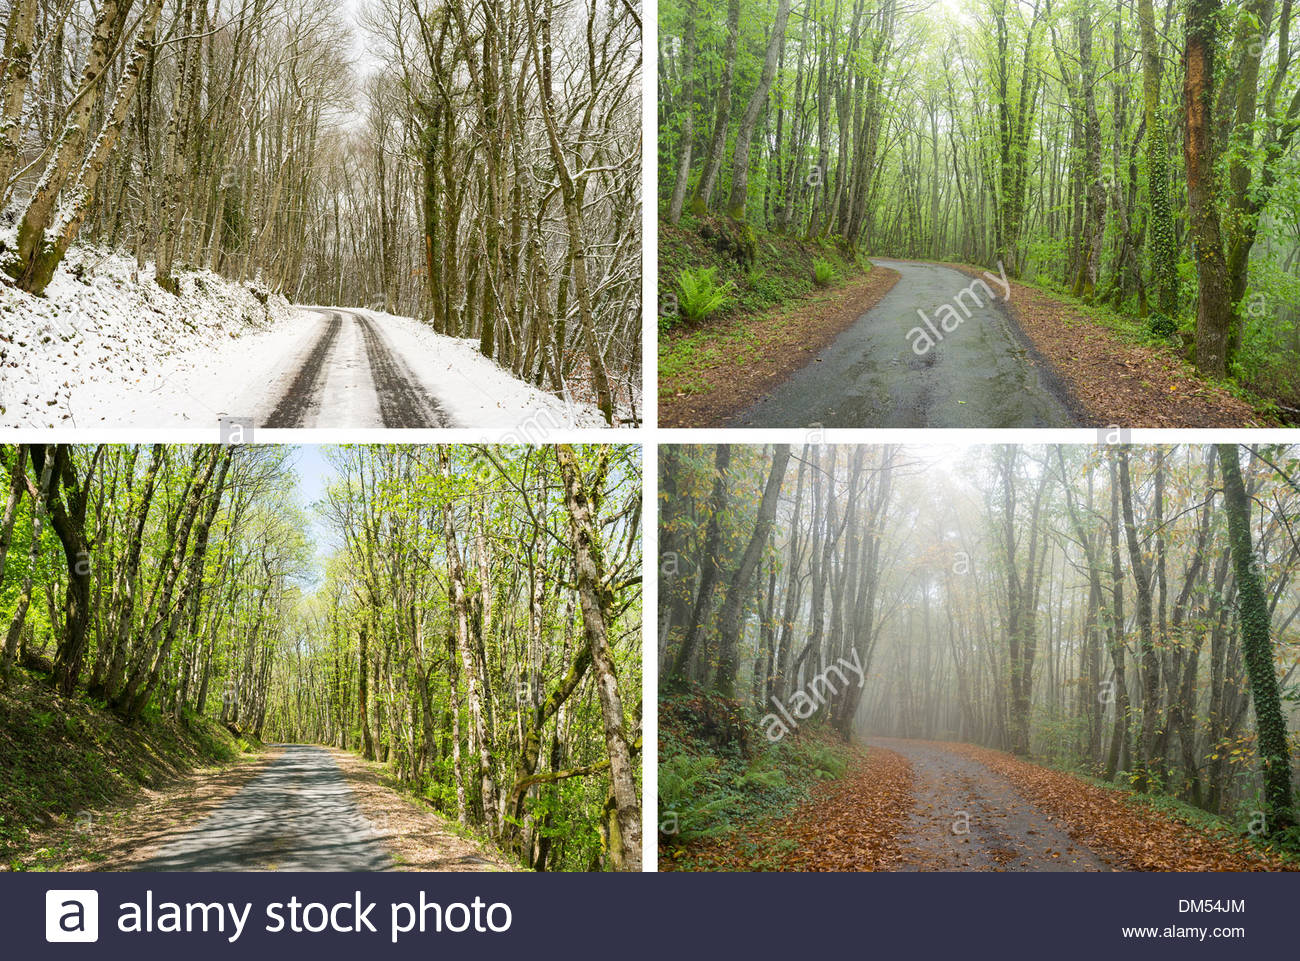 Country road through hardwood oak forest, composite image showing same scene in four seasons (Winter, Spring, Summer, Autumn) - Stock Image